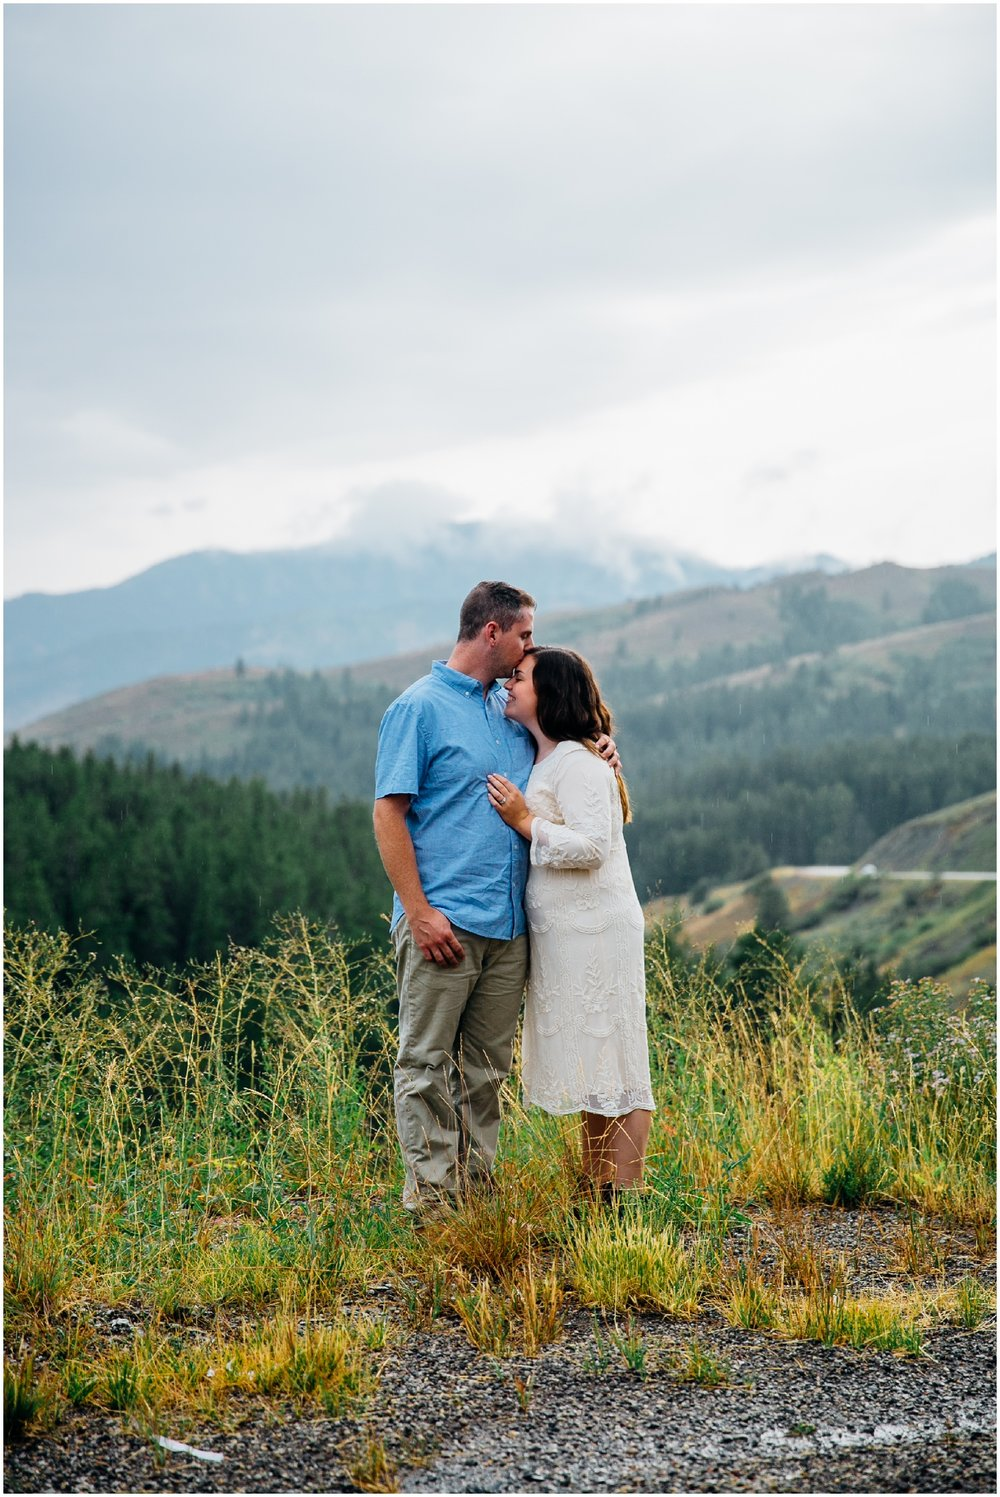 swan-valley-jackson-wyoming-engagements-idaho-colorado-wyoming-wedding-photographer_0901.jpg